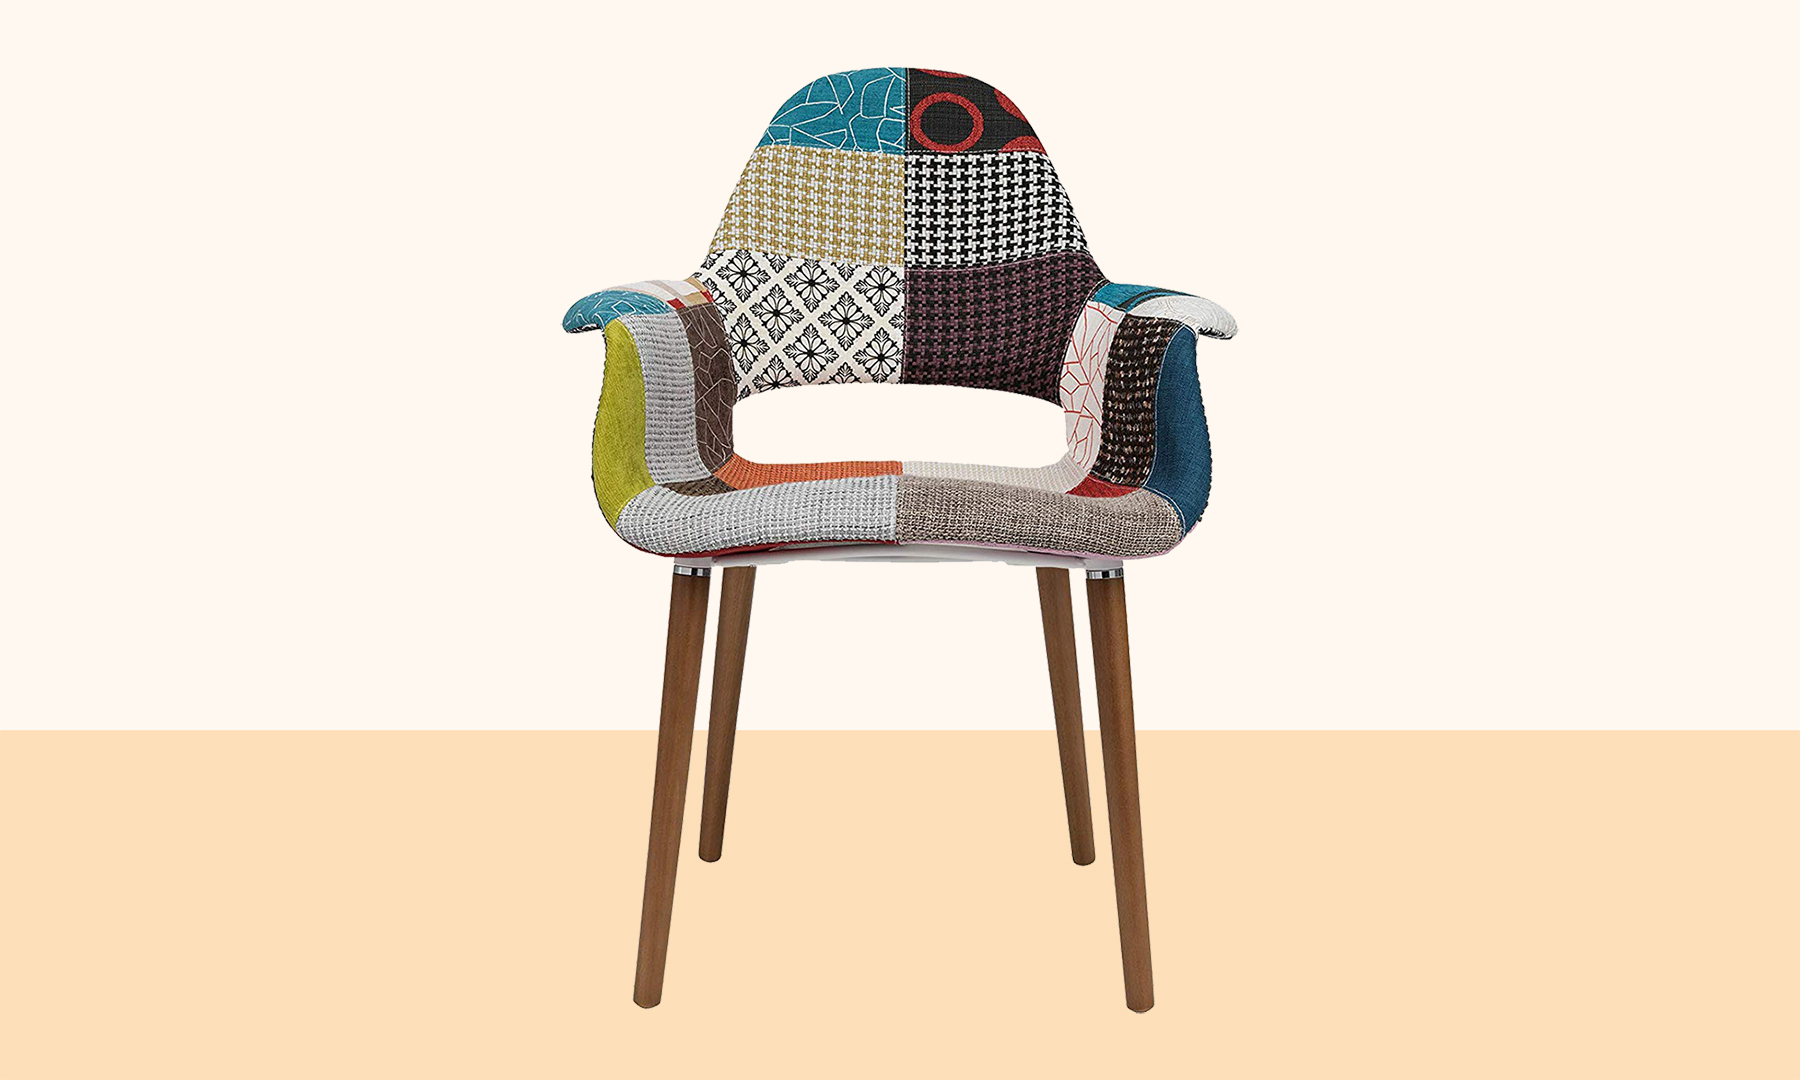 Best Mid Century Modern Furniture Chairs On Amazon Real Simple